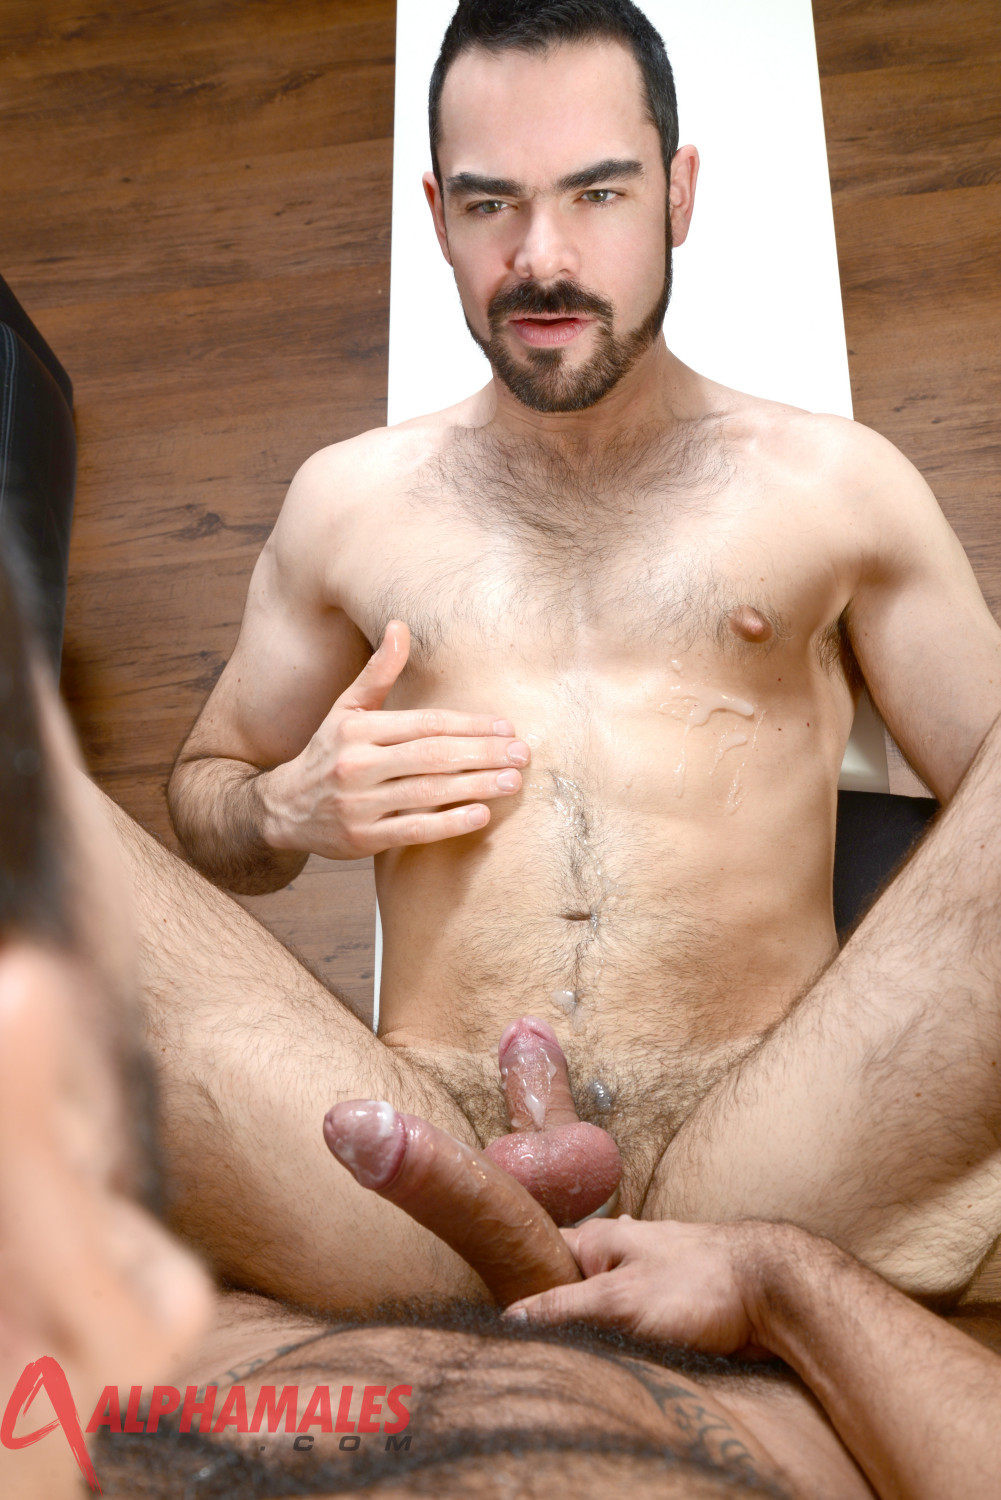 AlphaMales-Dolan-Wolf-and-Tiko-Foot-Massage-Latino-Big-Uncut-Cock-Fucking-Amateur-Gay-Porn-10 Hairy Muscle Guys Foot Massage Leads To Huge Uncut Cock Fucking